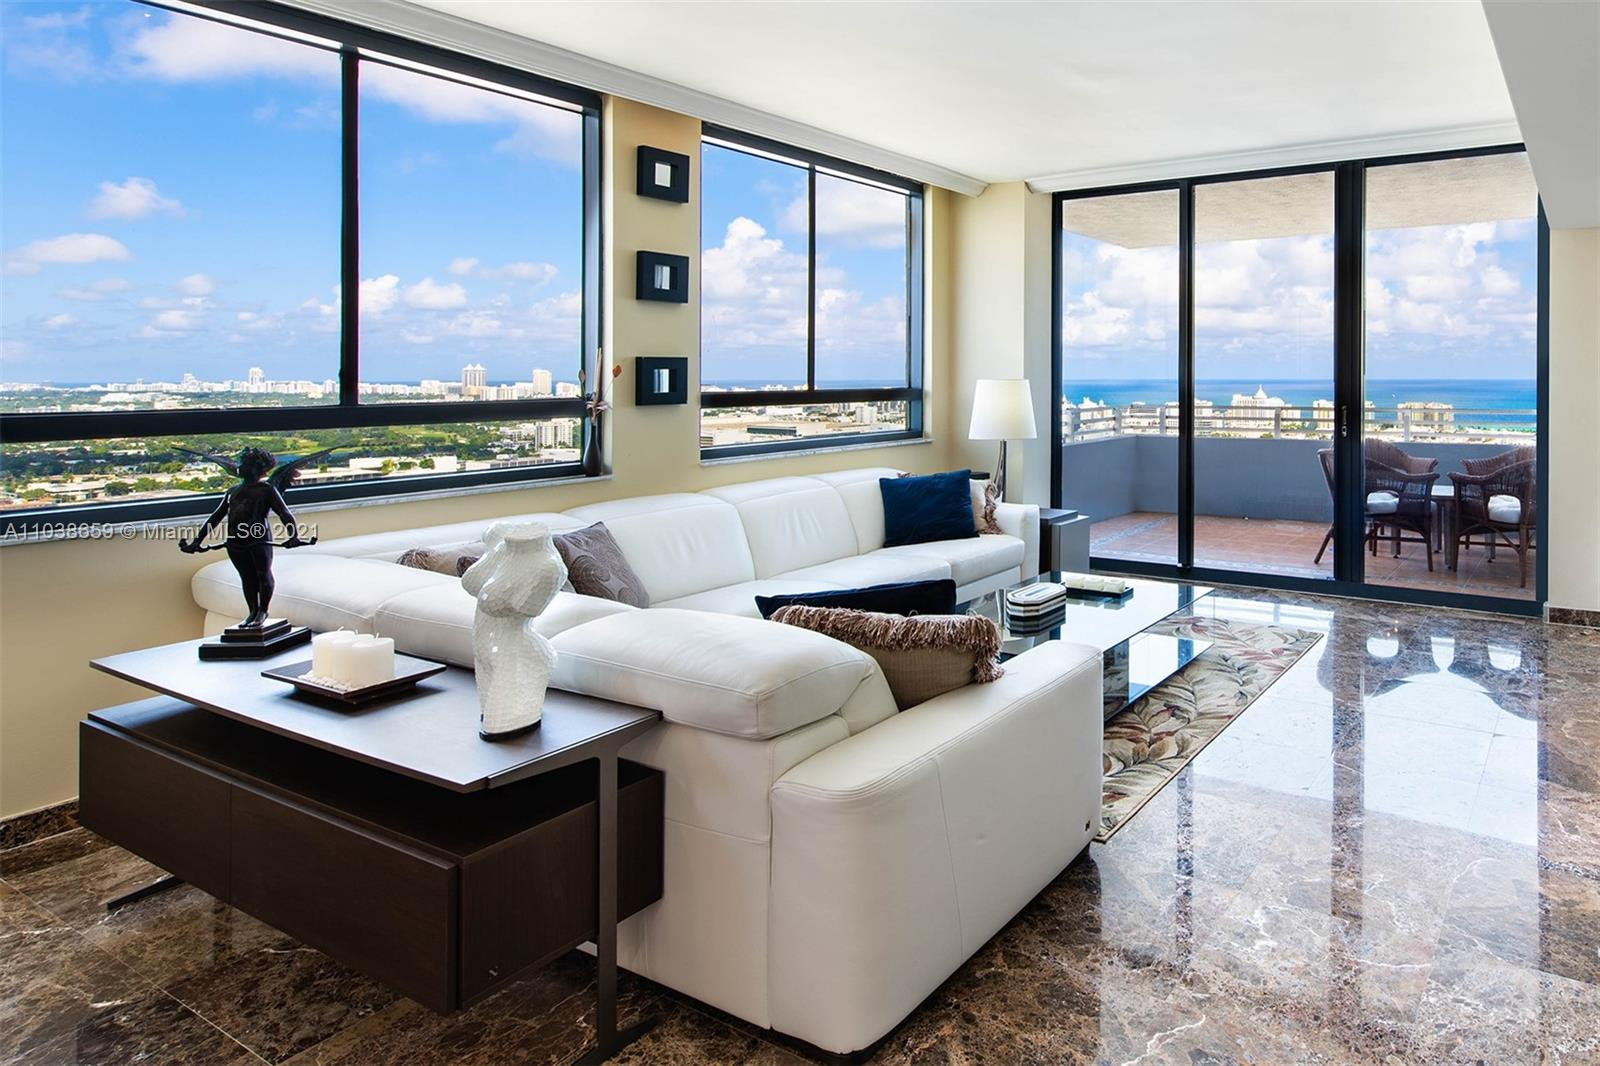 AN EXTRAORDINARY PENTHOUSE IN SOUTH BEACH  Enjoy  breathtaking views of the ocean, city and bay on the 36th floor of the Waverly Condominium  from 2 large private balconies and wide windows in every room. The master bedroom private balcony is the perfect spot for morning coffee. This beautiful penthouse has high end finishes, 9 ft ceilings, imported Italian marble floors, open kitchen, walk-in closets, storage closet. The Waverly is a full service condominium with a serene heated pool and hot tub on Biscayne Bay, BBQs, tennis court, putting green, high end gym, party room, convenience store, 24 hour concierge, security, valet. The Waverly is a short walk to Lincoln Rd, restaurants, theater, shops and beach. 1,831 sq ft w/balconies Cable, internet included. 3 garage spaces  Dog friendly